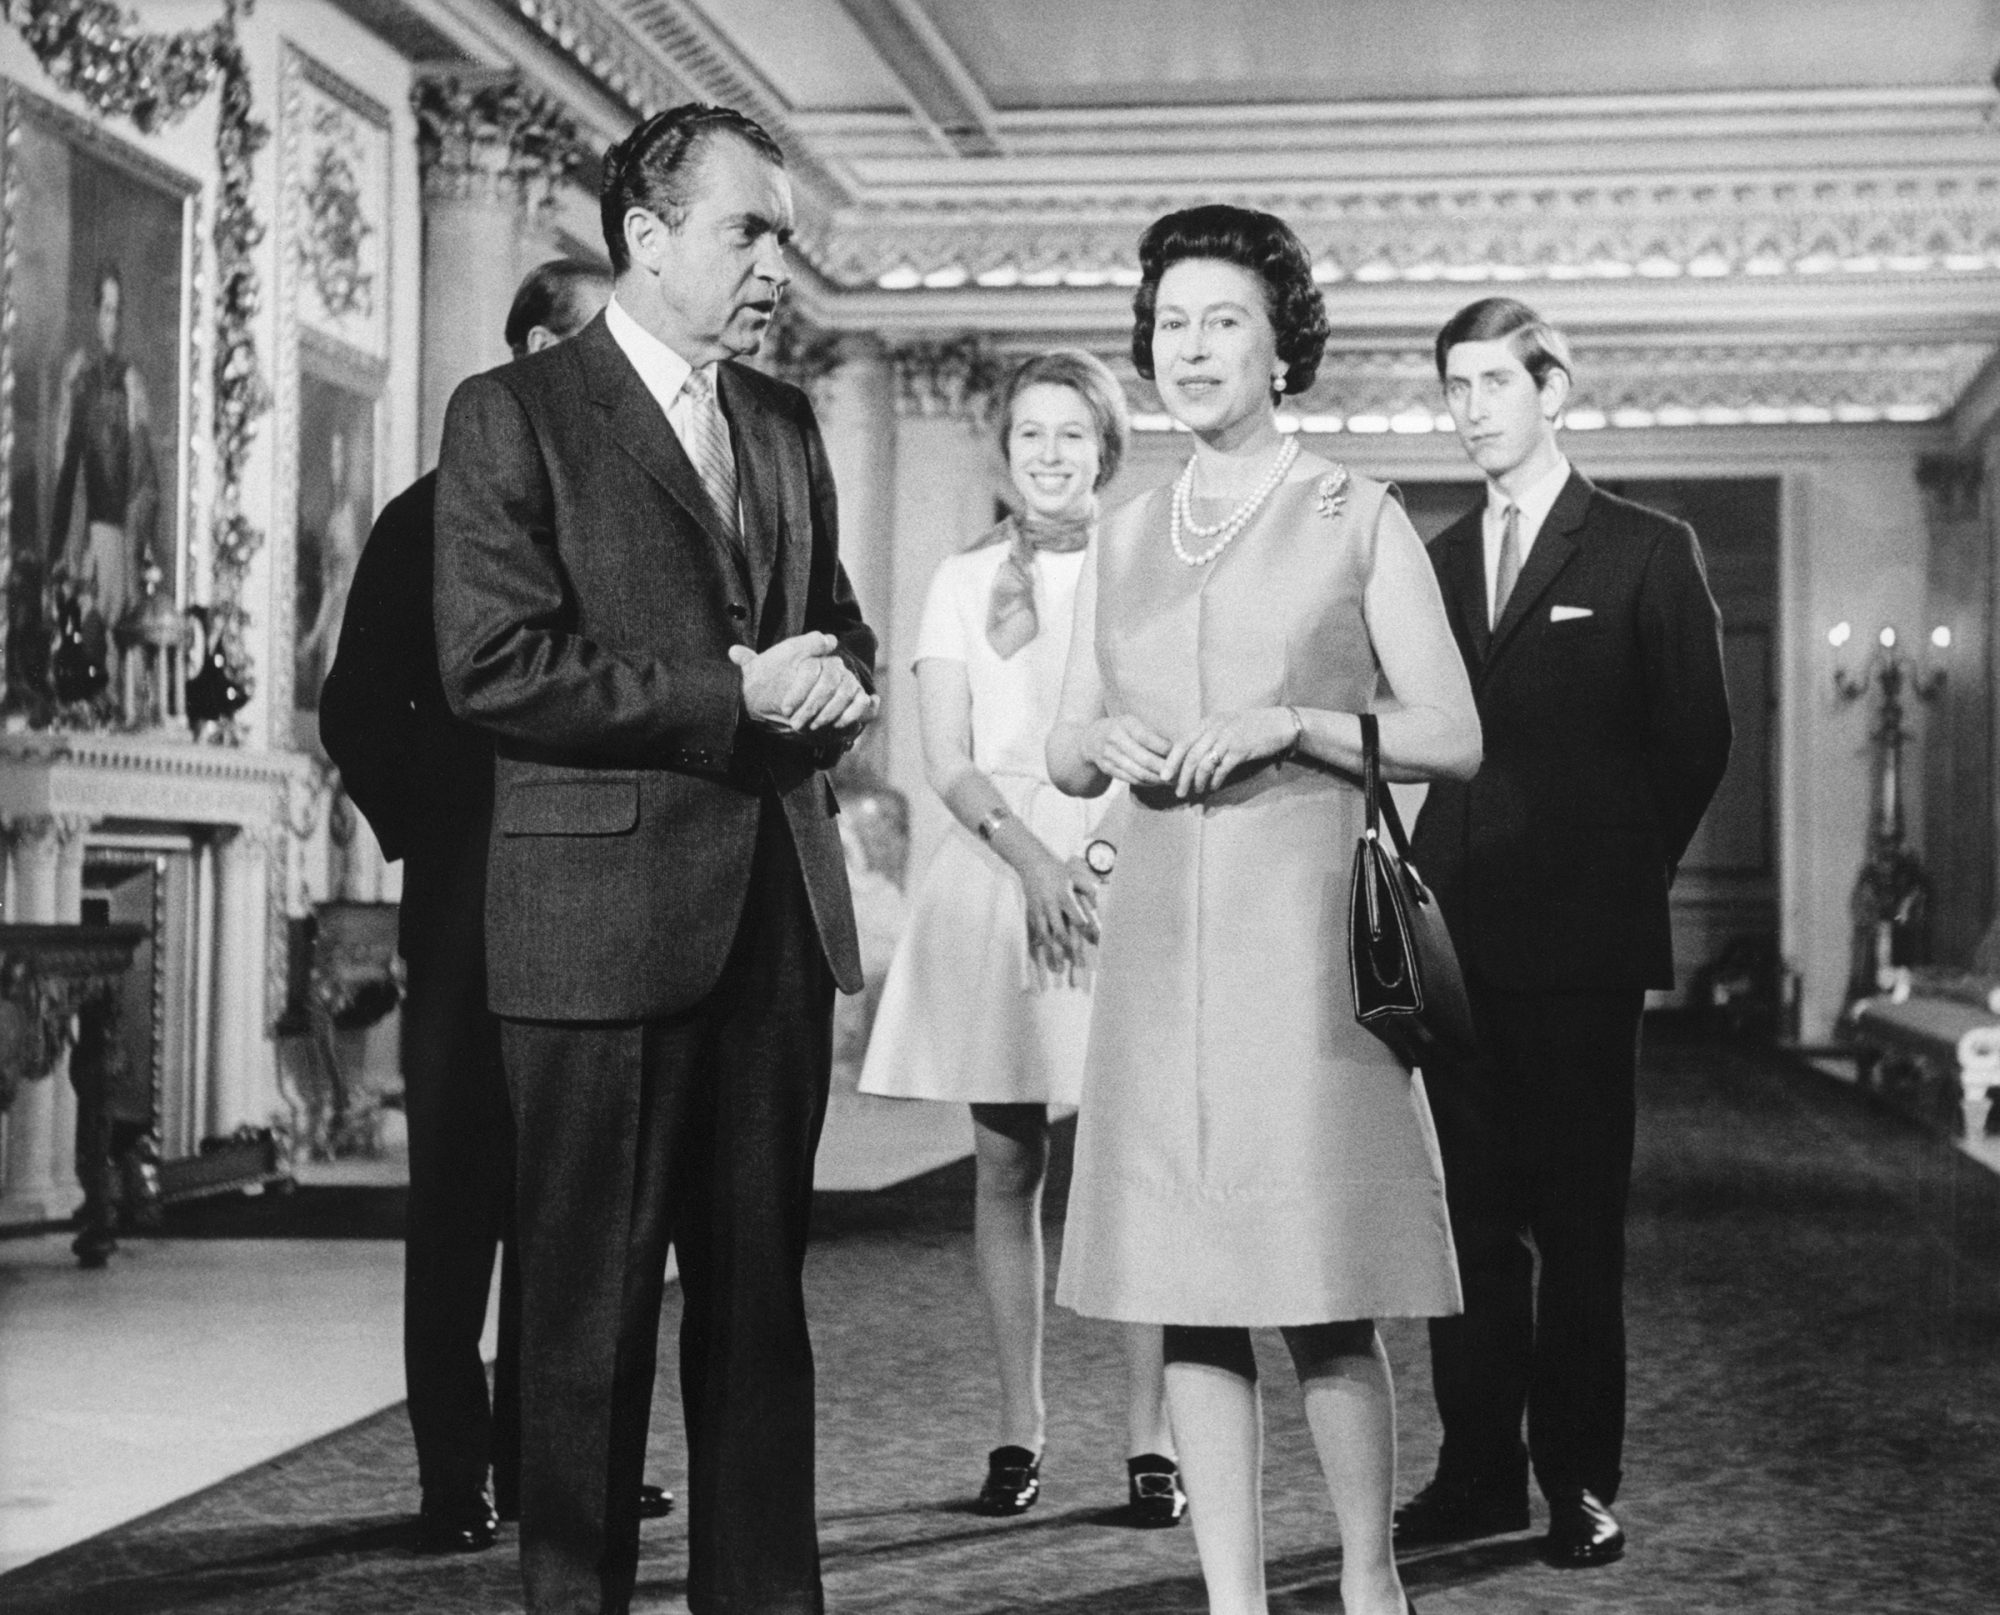 President Nixon stands with Queen Elizabeth during a meeting at Buckingham Palace. Princes Charles and Philip stand with Princess Anne behind them.